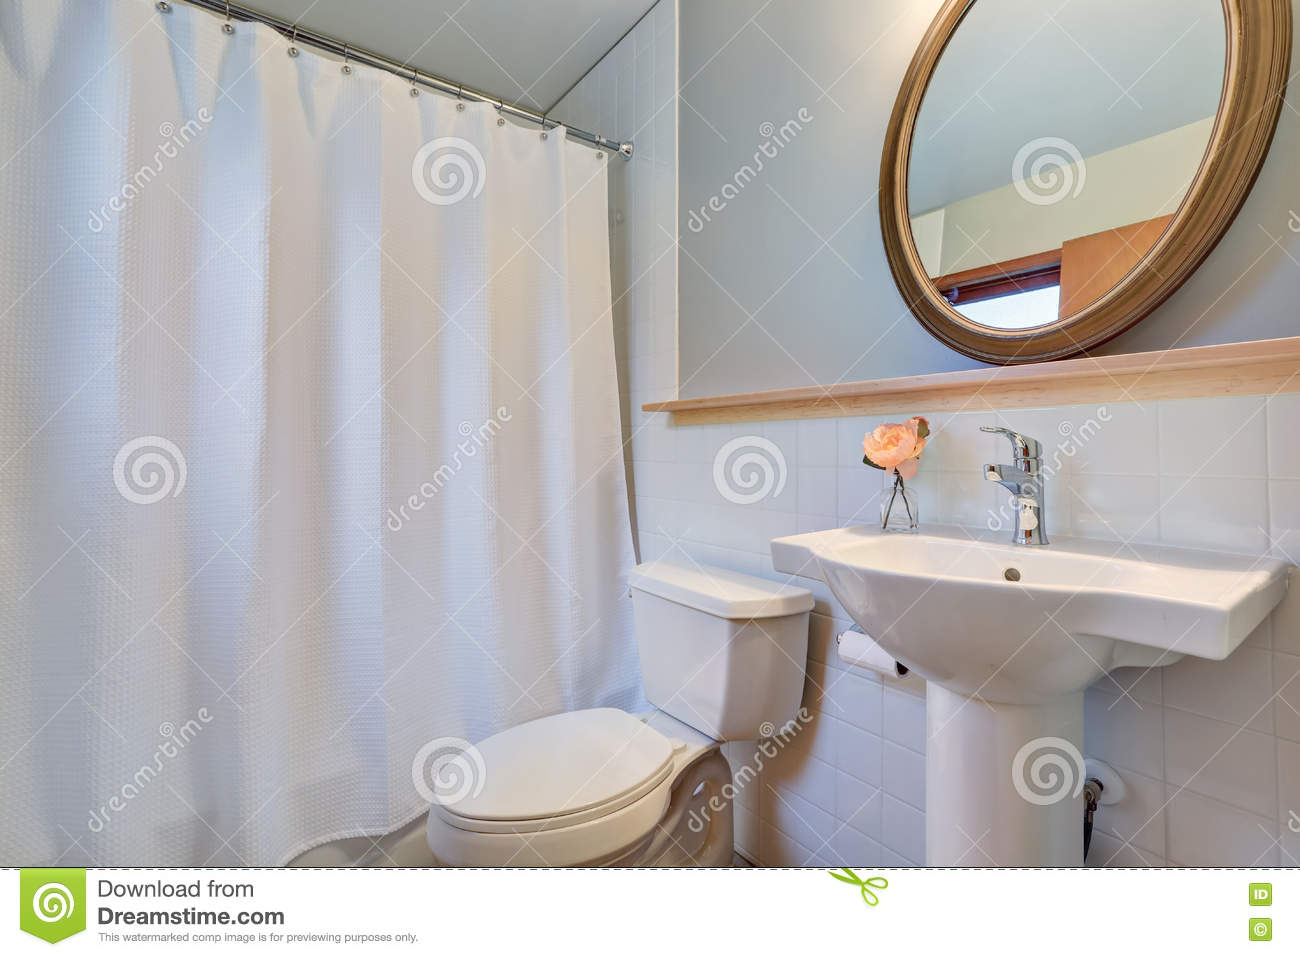 White Clean Bathroom With Washbasin Stand And A Toilet. Stock Image ...